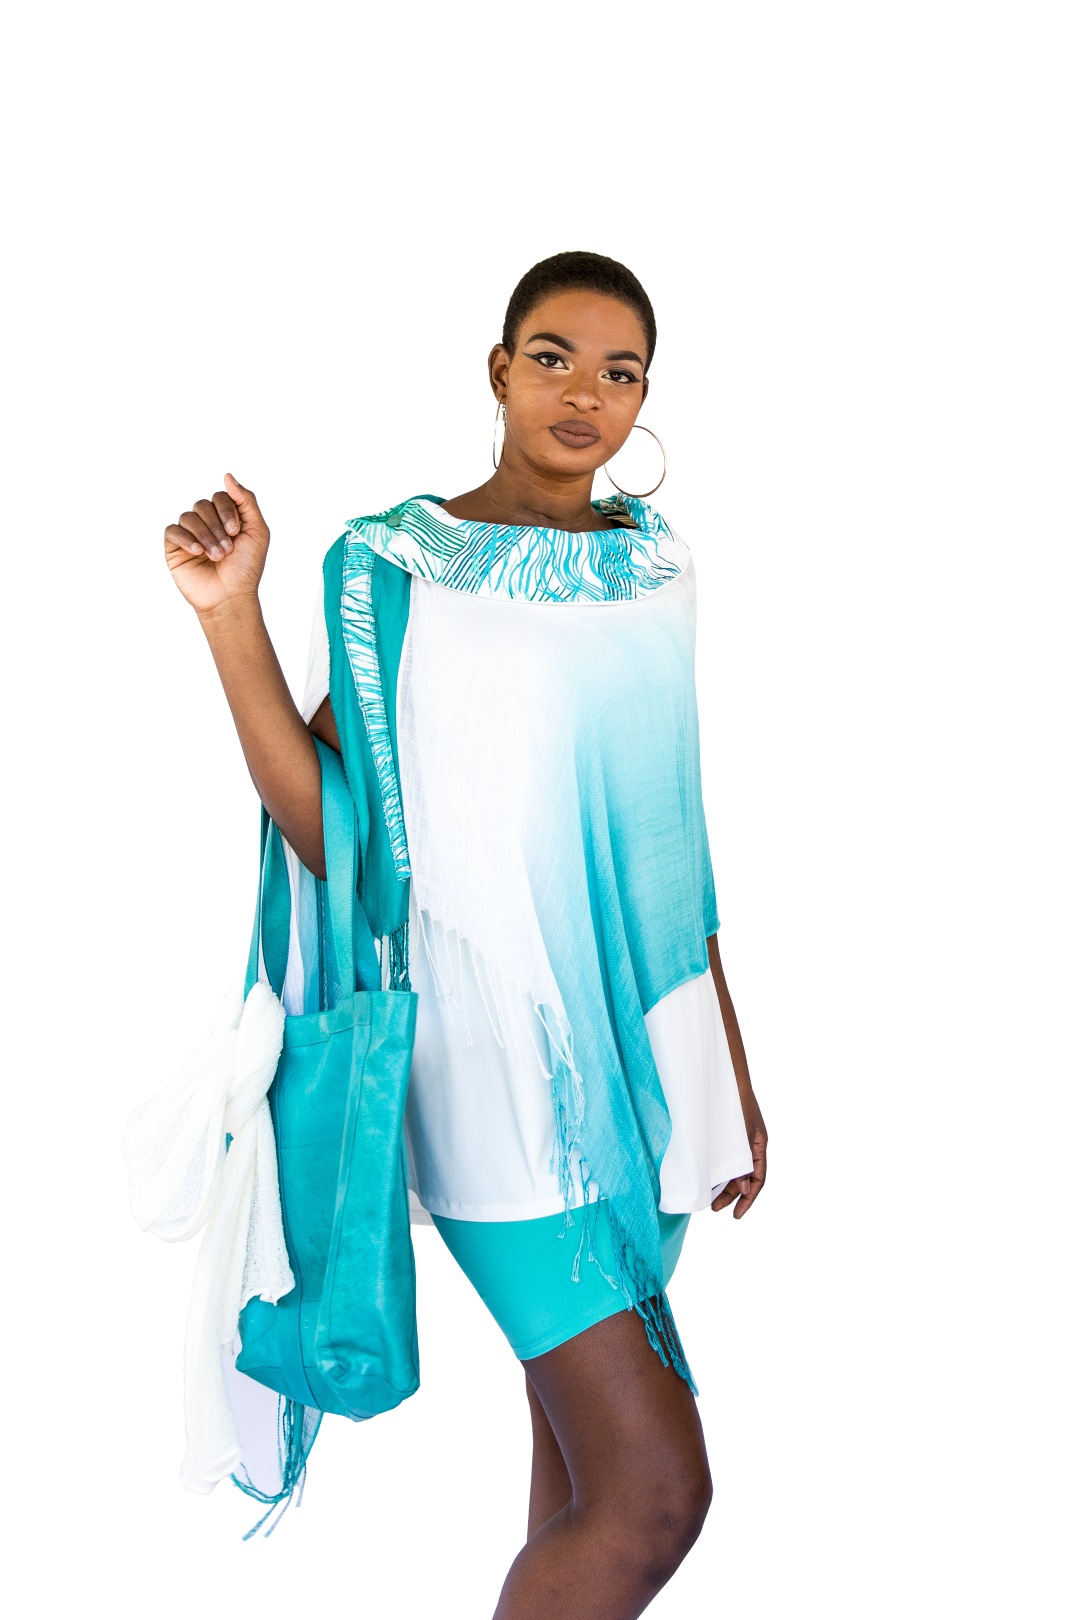 sally anne lyons creative clothing solutions for women 2019_035_transparent 2.png